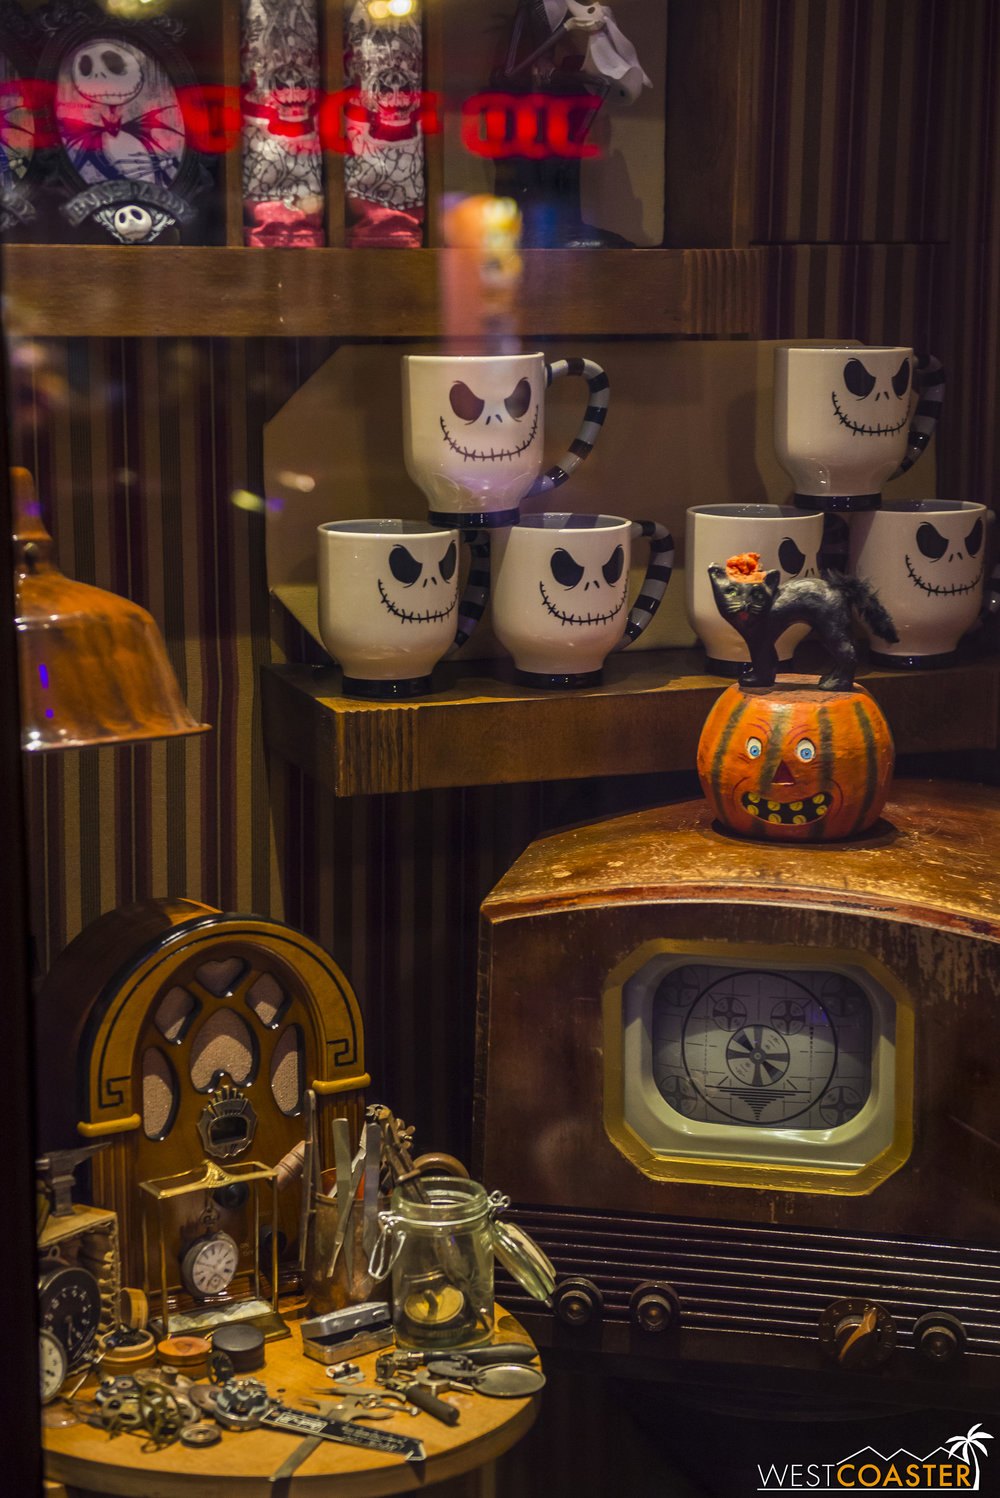 The Buena Vista Street storefronts were also decorated with Halloween displays.